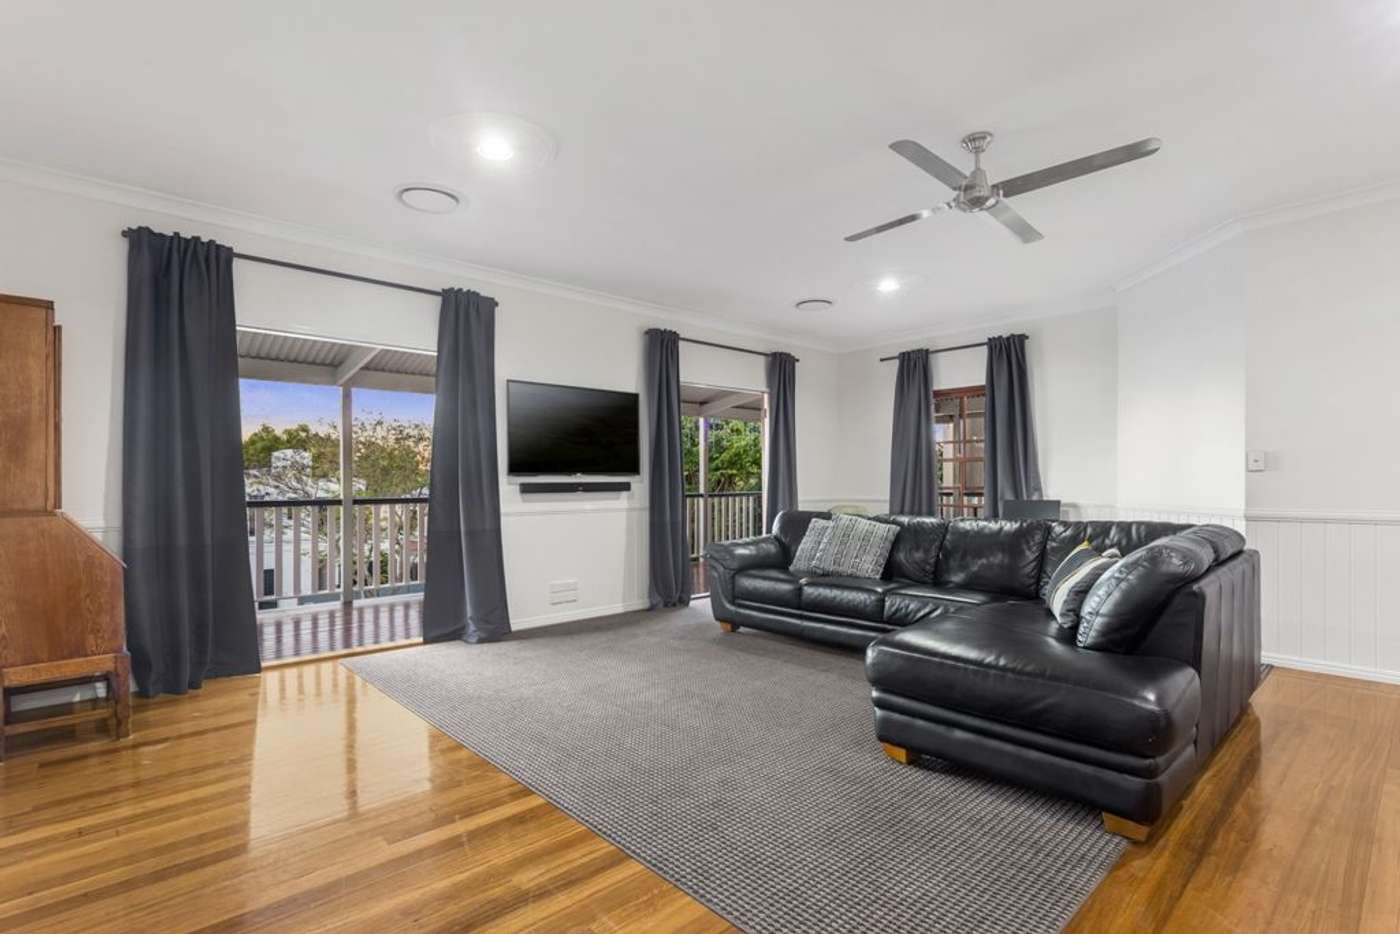 Sixth view of Homely house listing, 6 Daniel Place, Newmarket QLD 4051